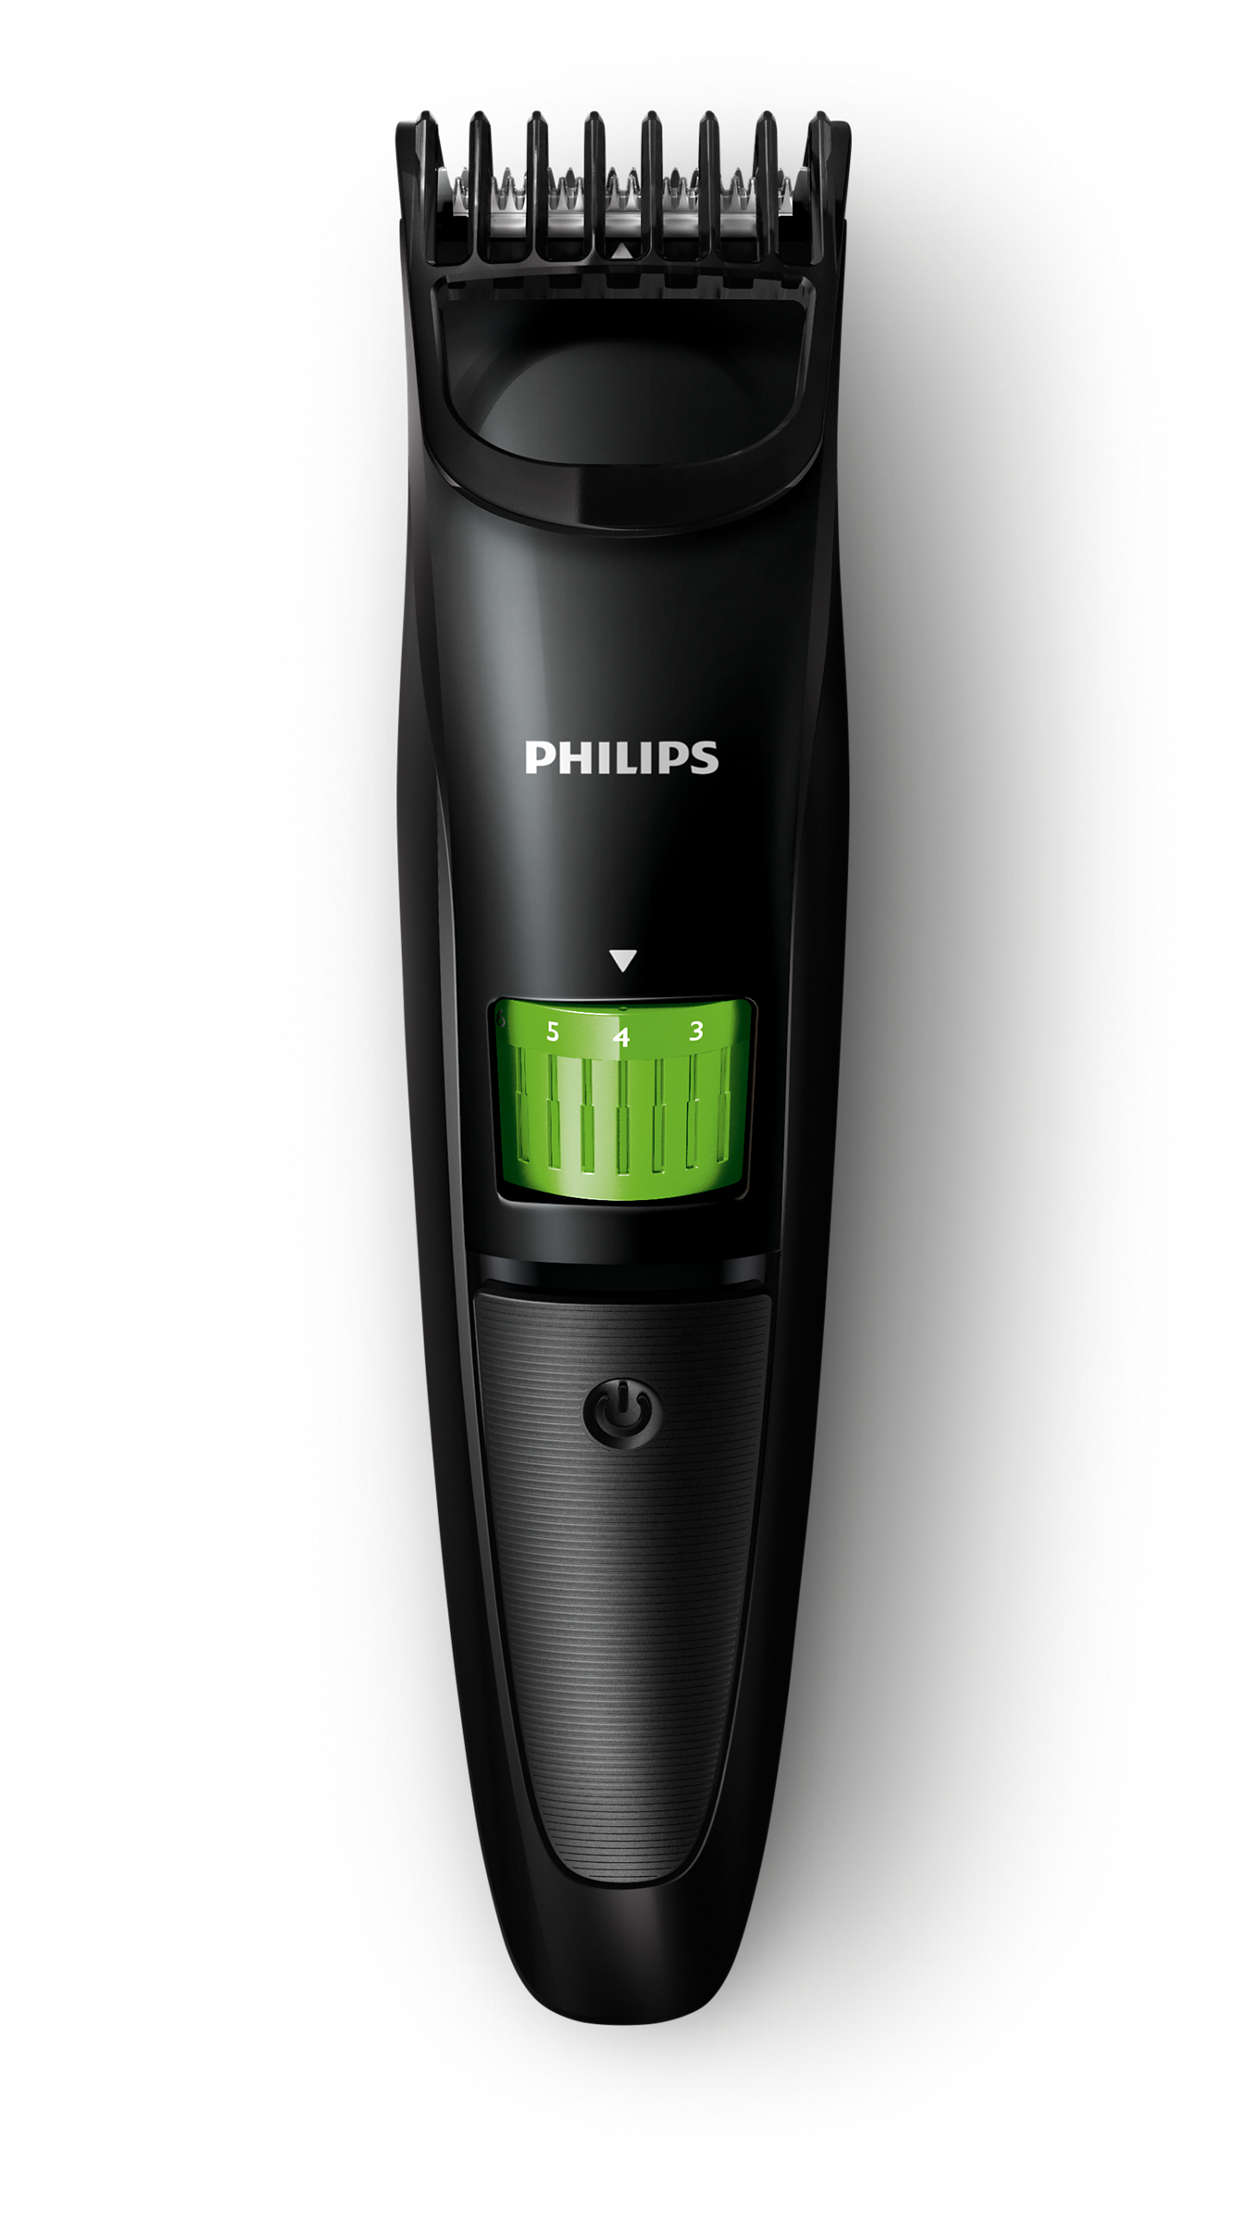 beardtrimmer series 3000 beard trimmer qt3310 15 philips. Black Bedroom Furniture Sets. Home Design Ideas